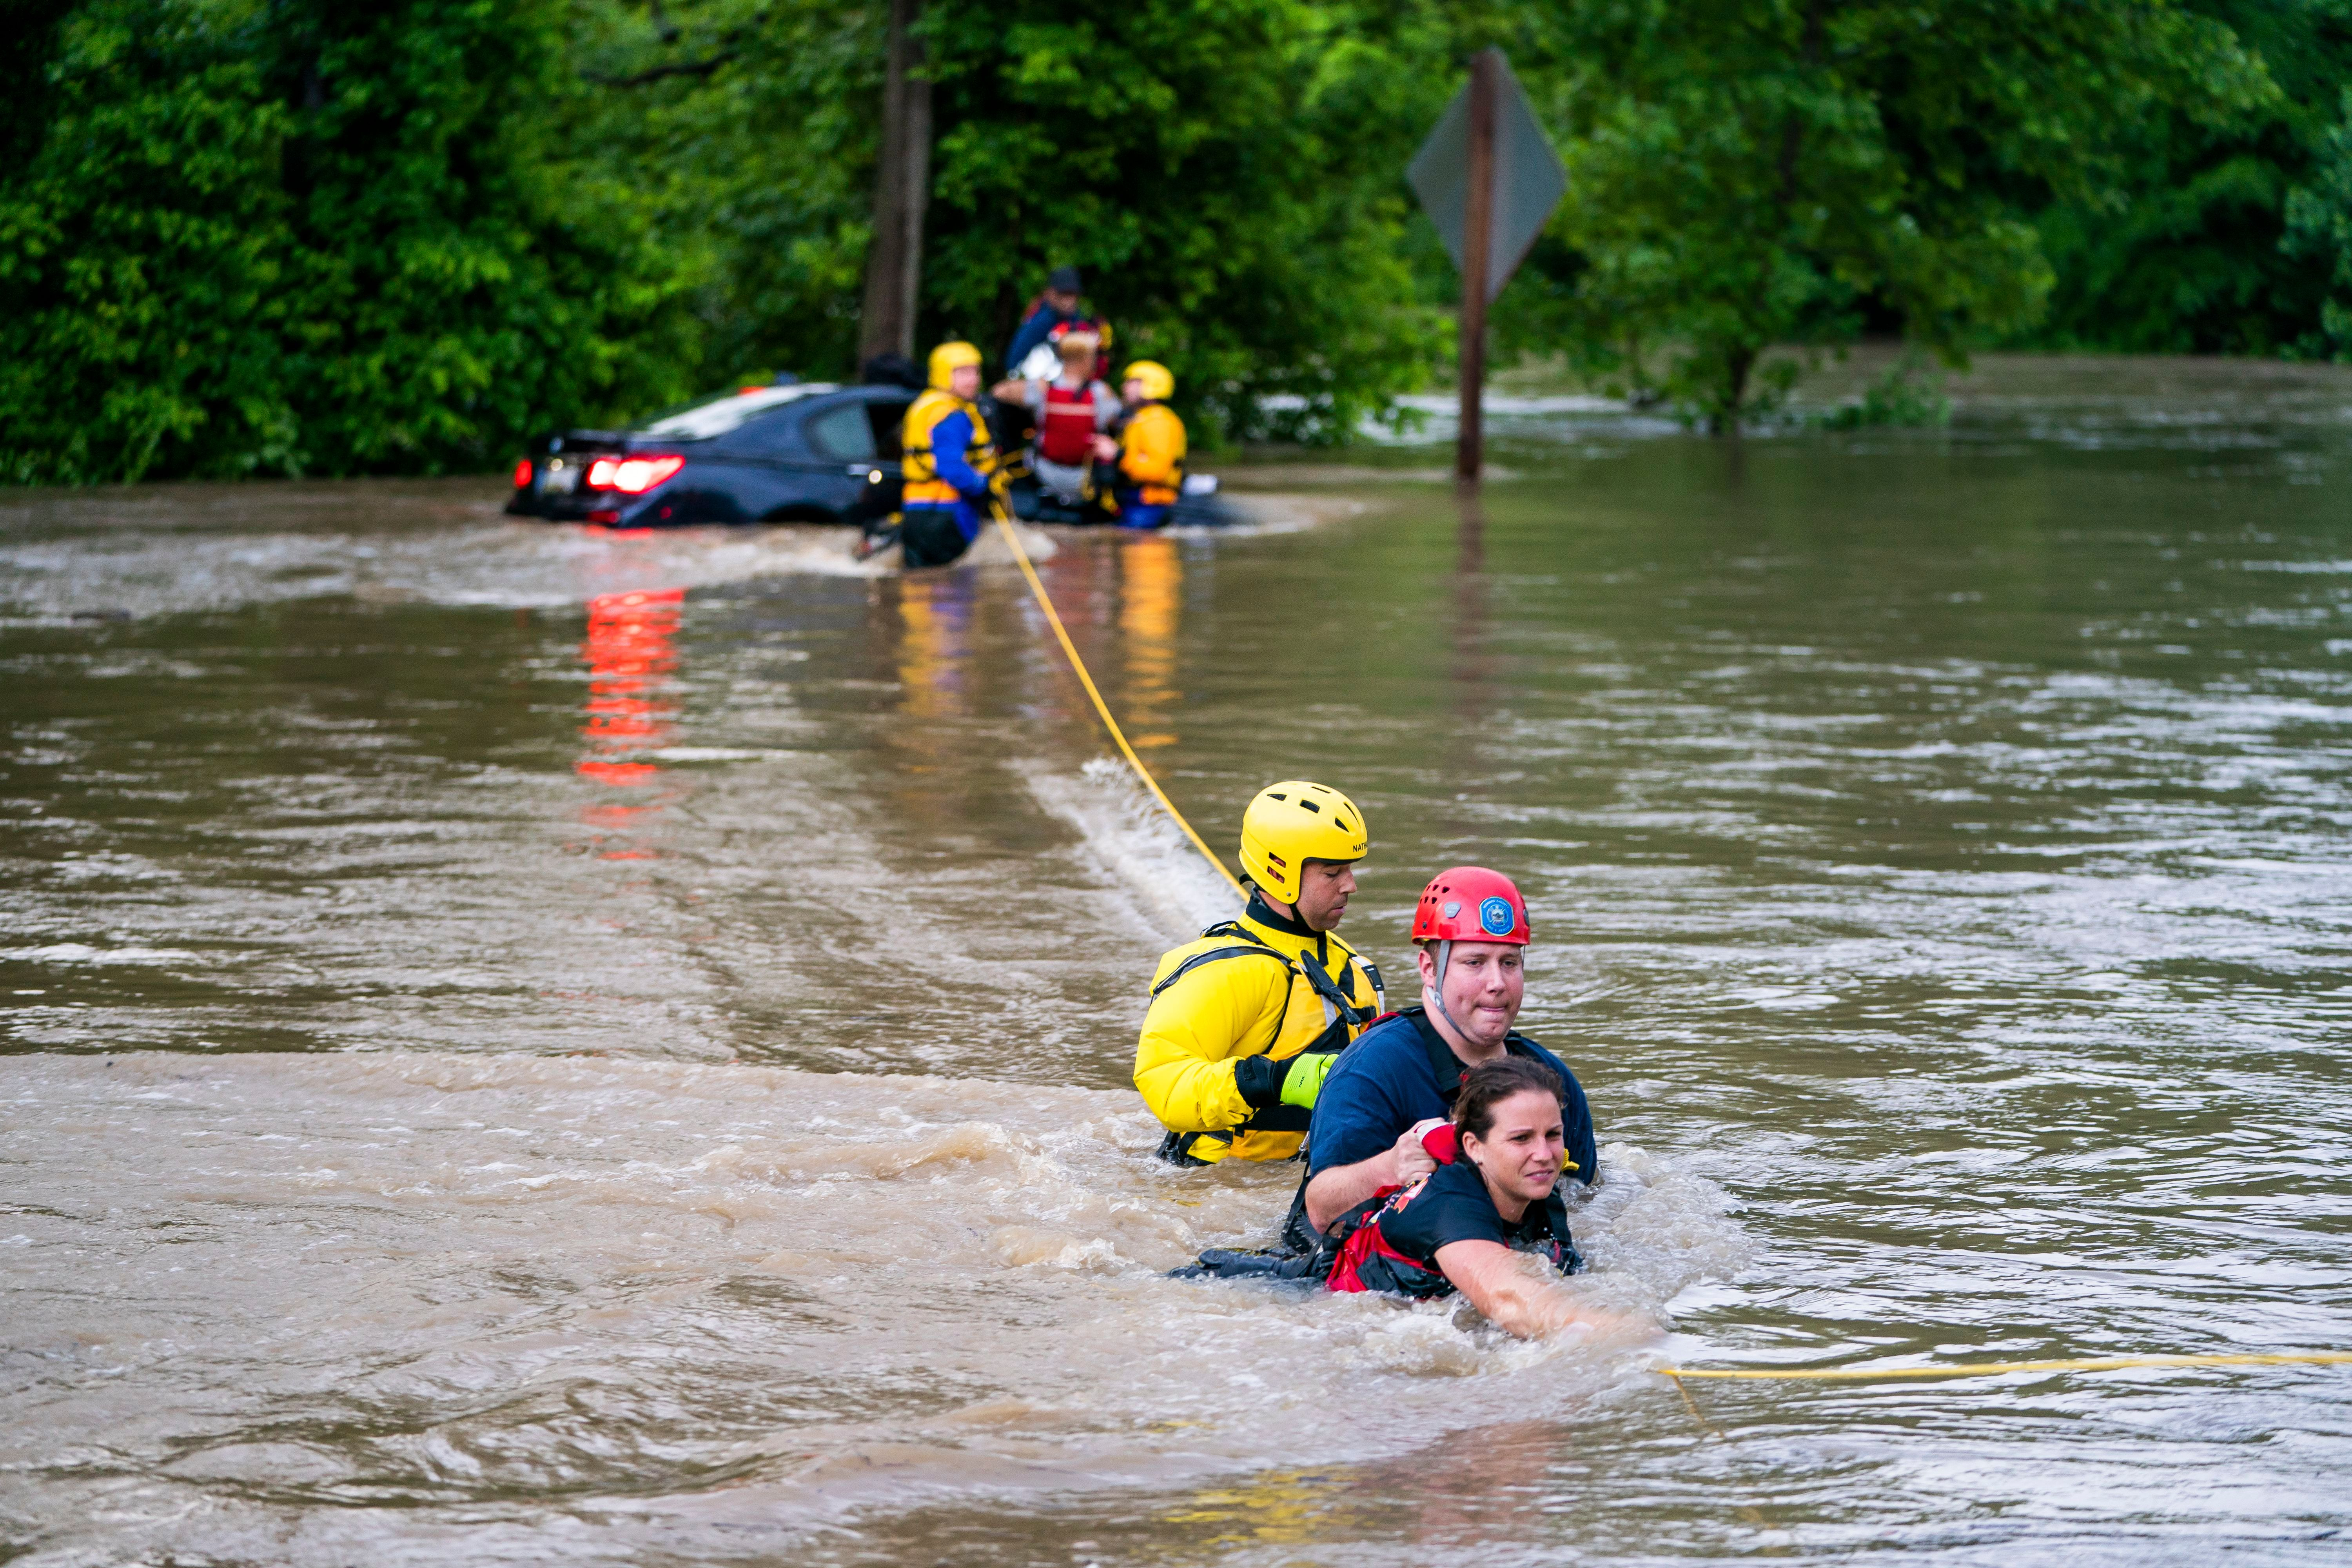 Commuters are rescued from a flooded car on Columbia Pike after a flash flood in Oakland Mills, Maryland, USA, 27 May 2018. The National Weather Service stated as much as 9.5 inches of rain fell in the area. Flash floods ravage Maryland, Oakland Mills, USA - 27 May 2018